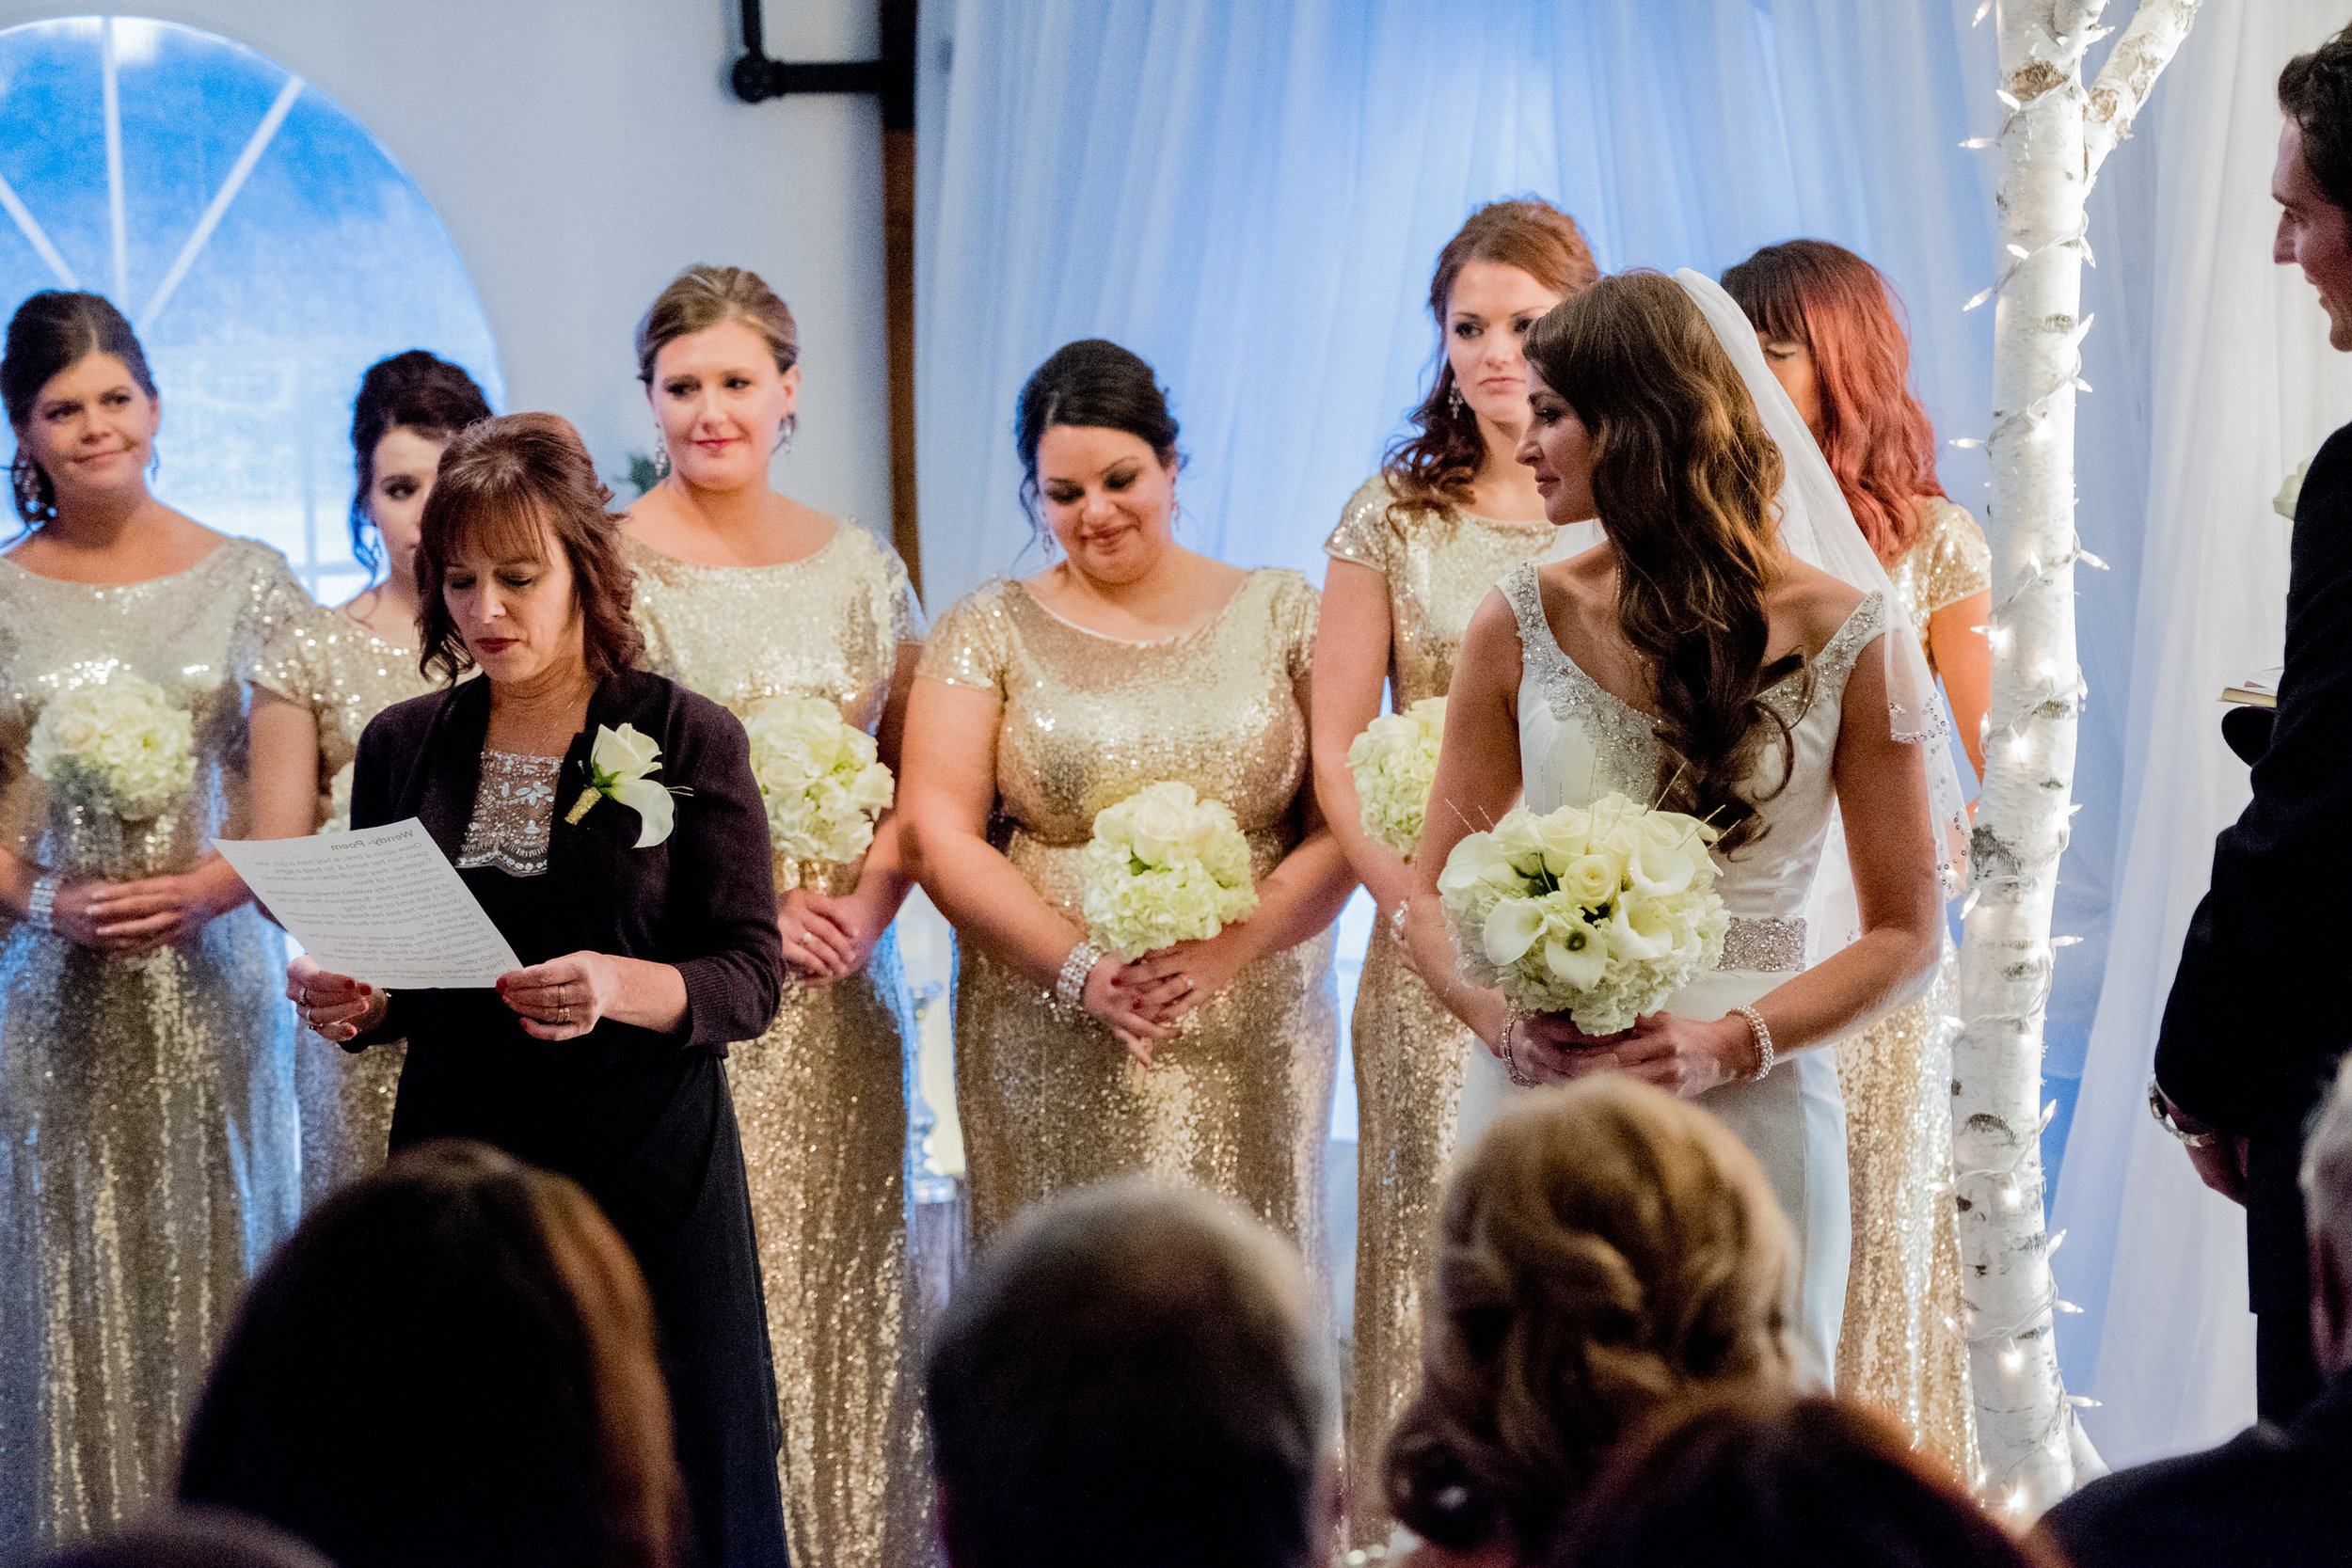 bride's mother reads the ready during the wedding ceremony at pine peaks event center